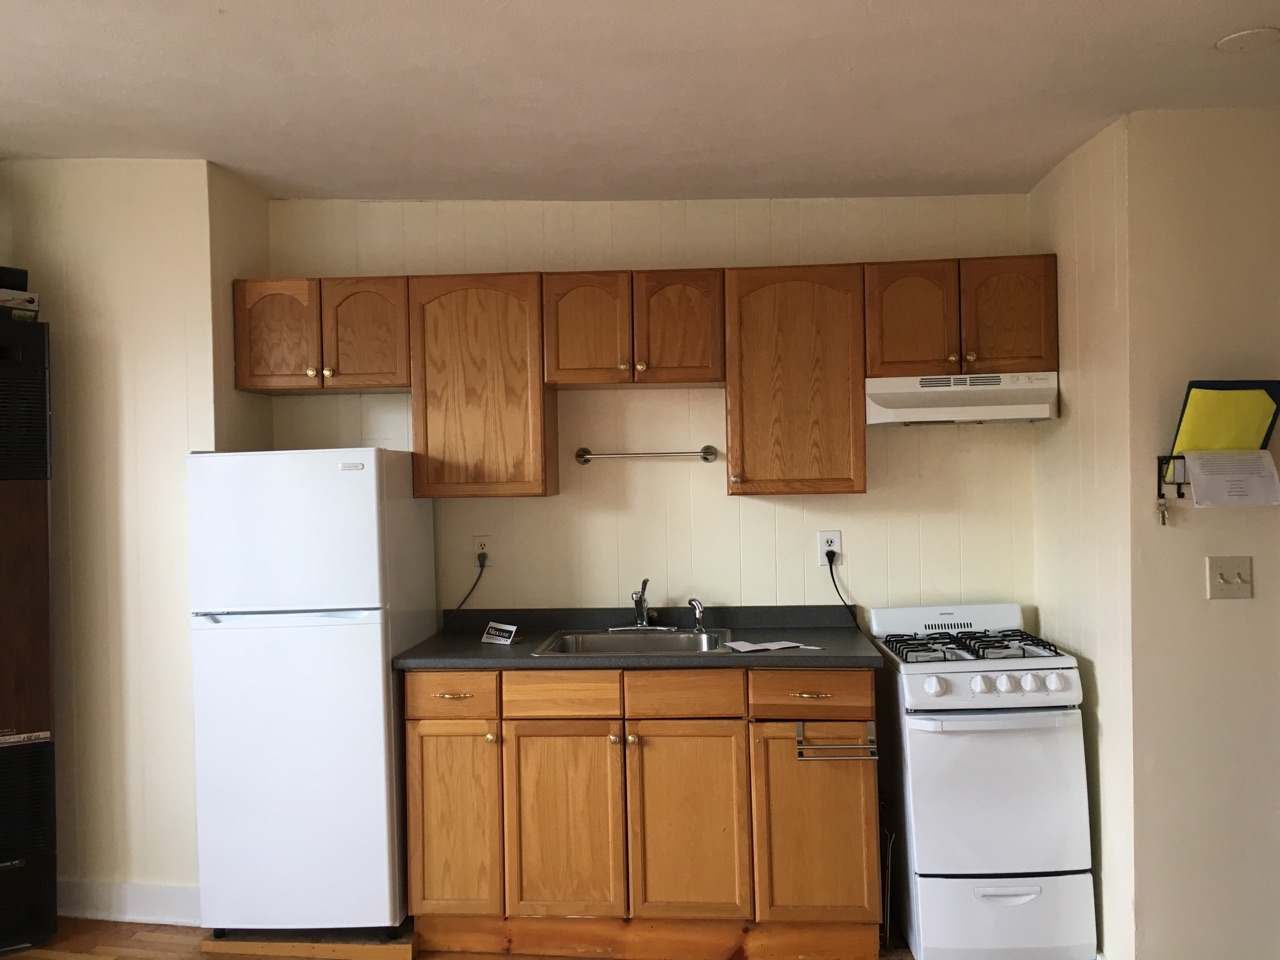 2 Bd, NO FEE, Hardwood Floors, Laundry in Building